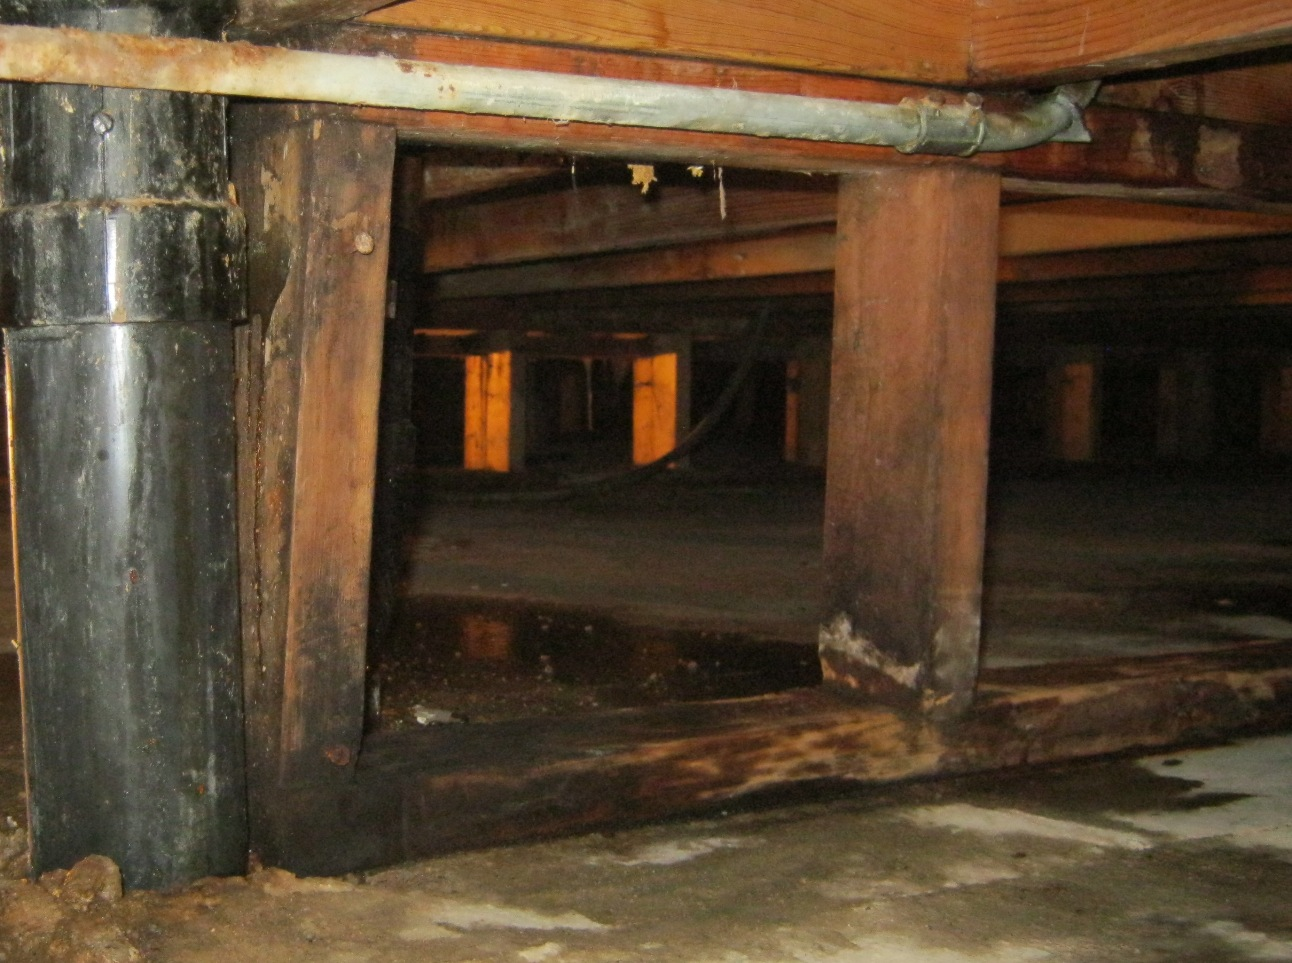 Mold crawlspace damp